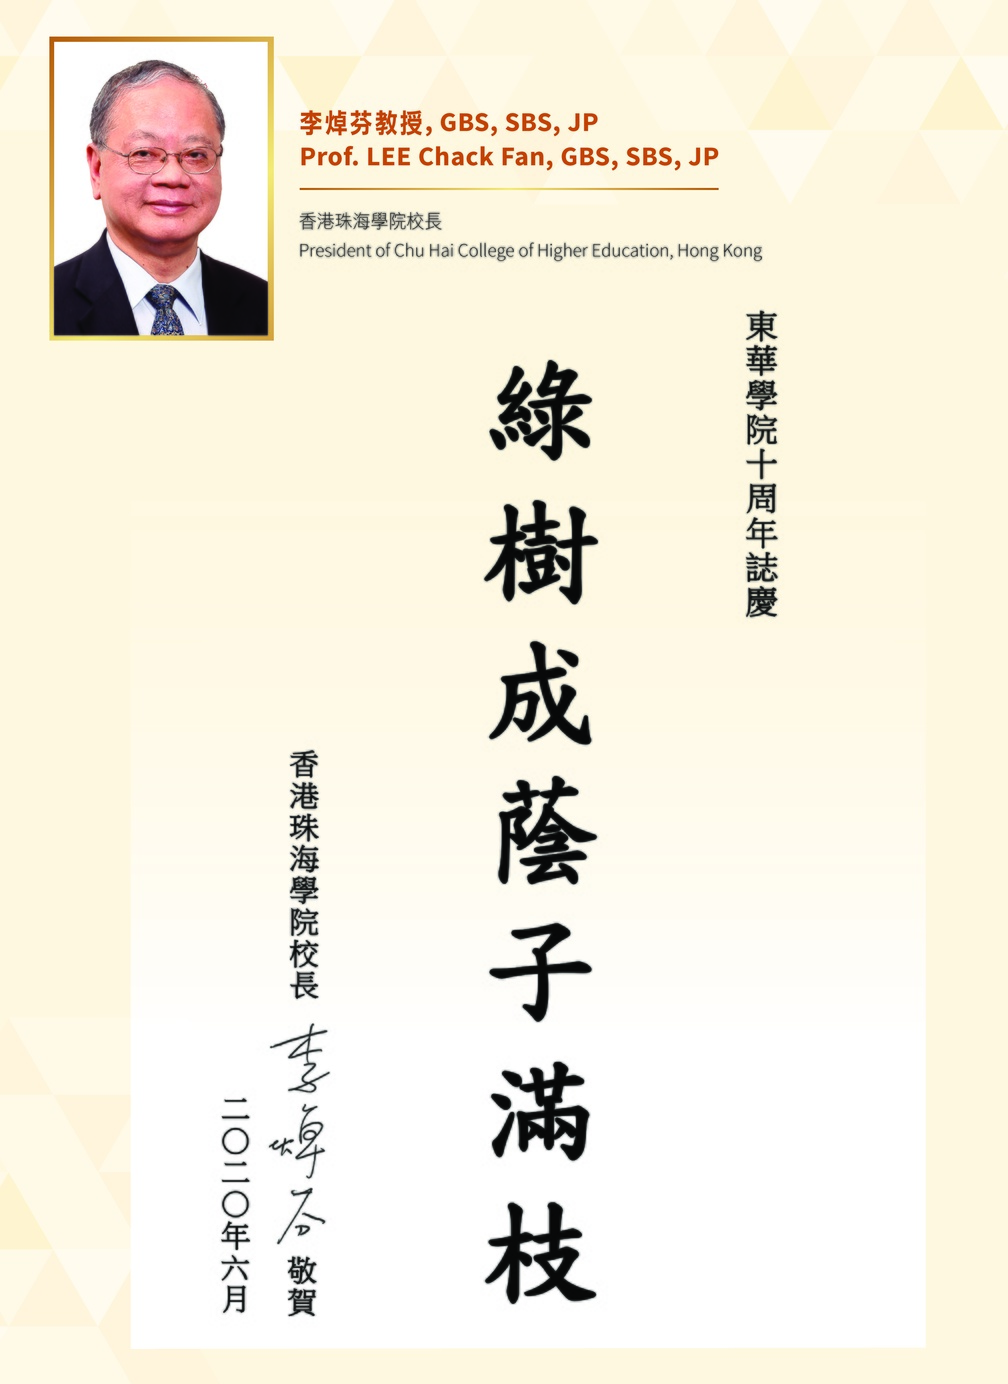 President of Chu Hai College of Higher Education, Hong Kong